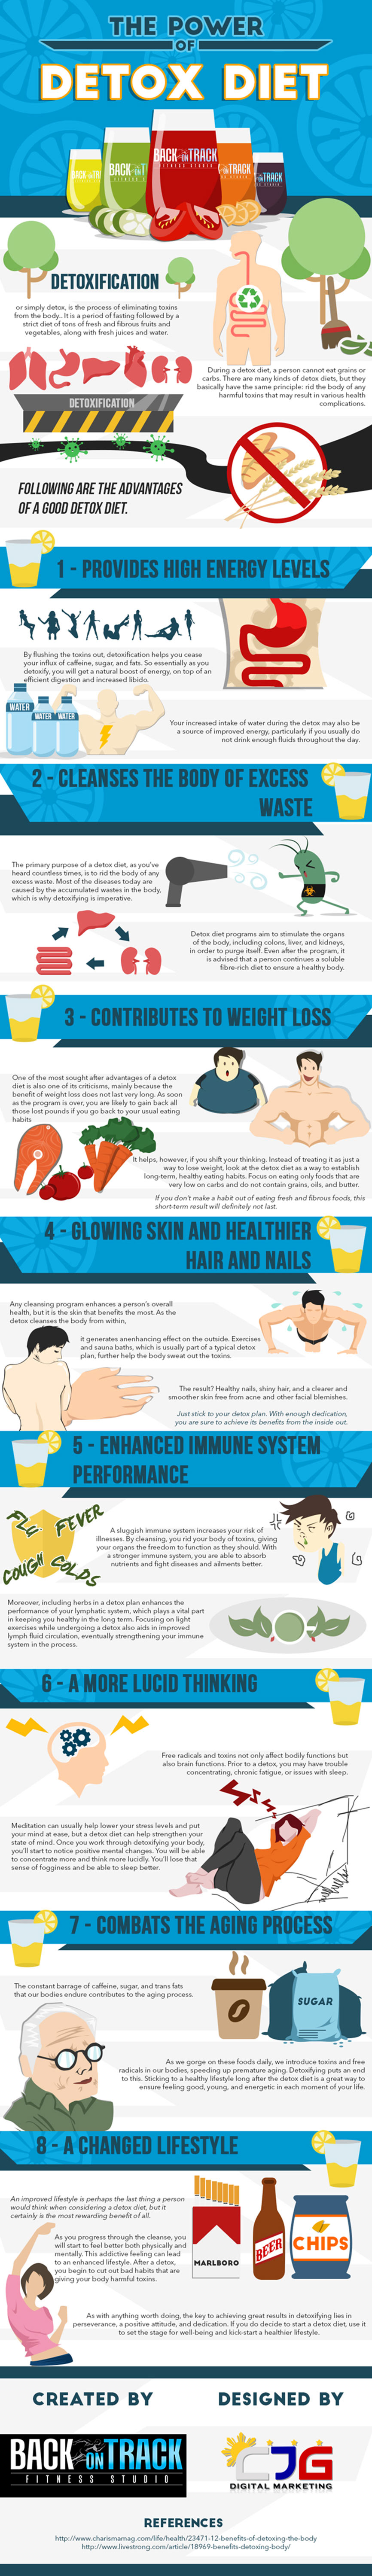 The Power of a Detox Diet Infographic